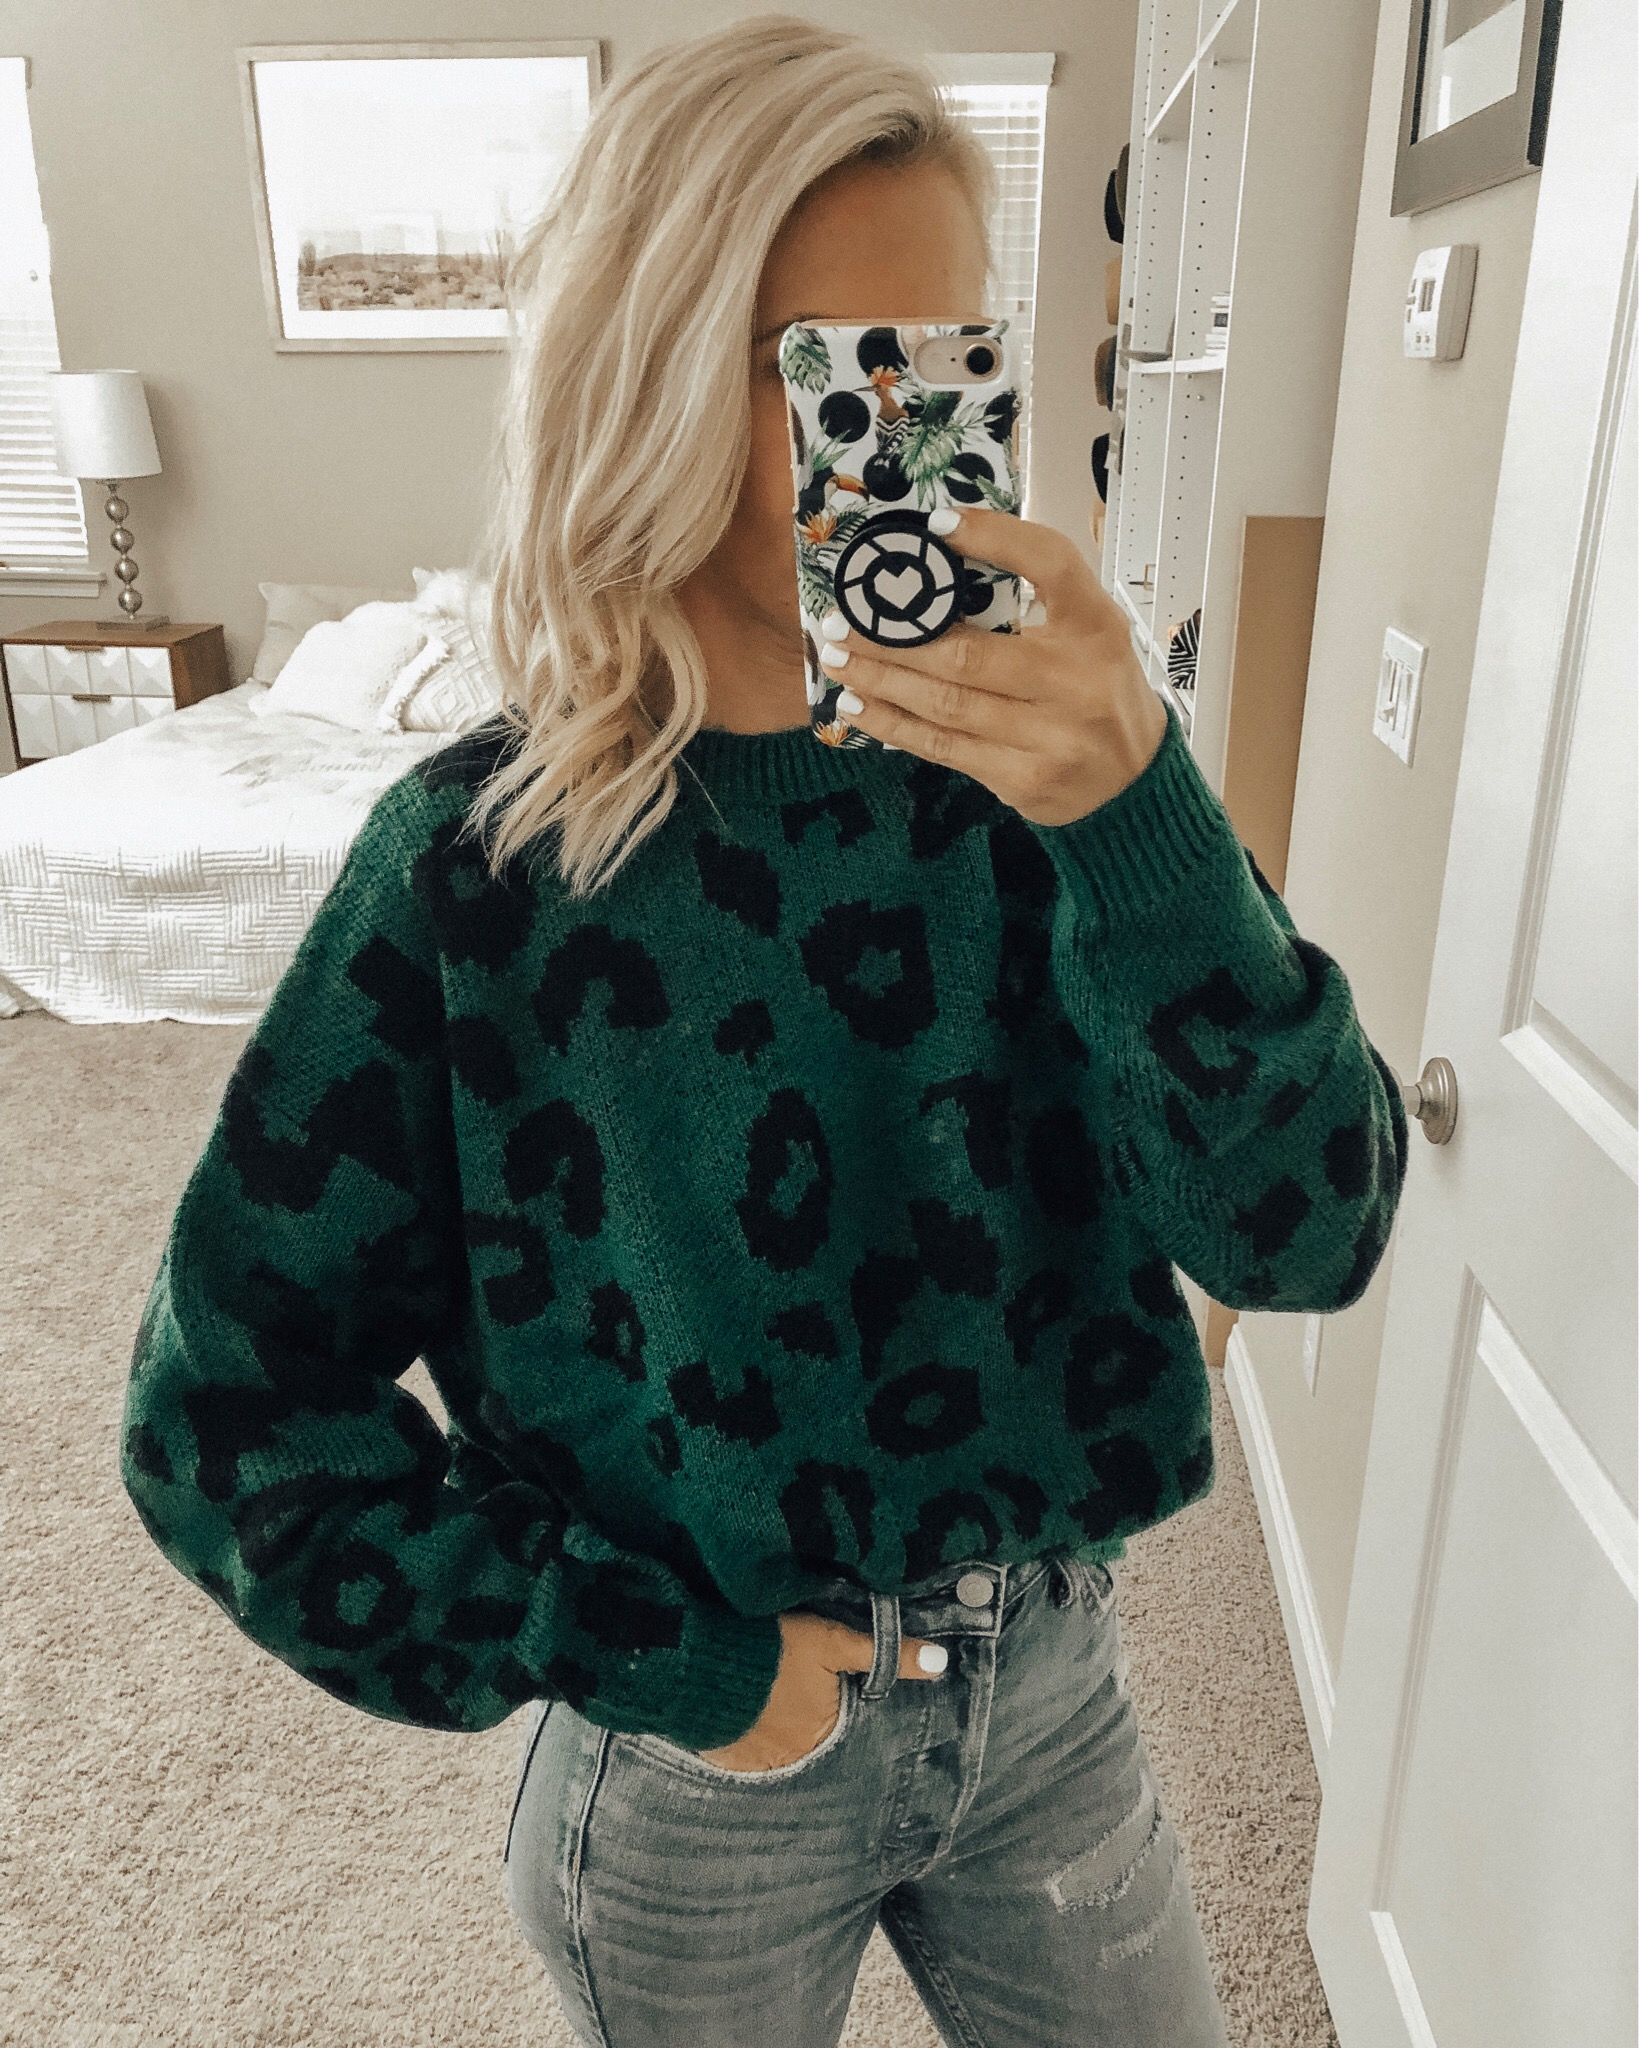 OCTOBER TOP 10- Jaclyn De Leon Style - Fall fashion + top selling items + cozy sweaters + camo leggings + leopard + sweater weather + what to buy this season + color block sweater + chevron